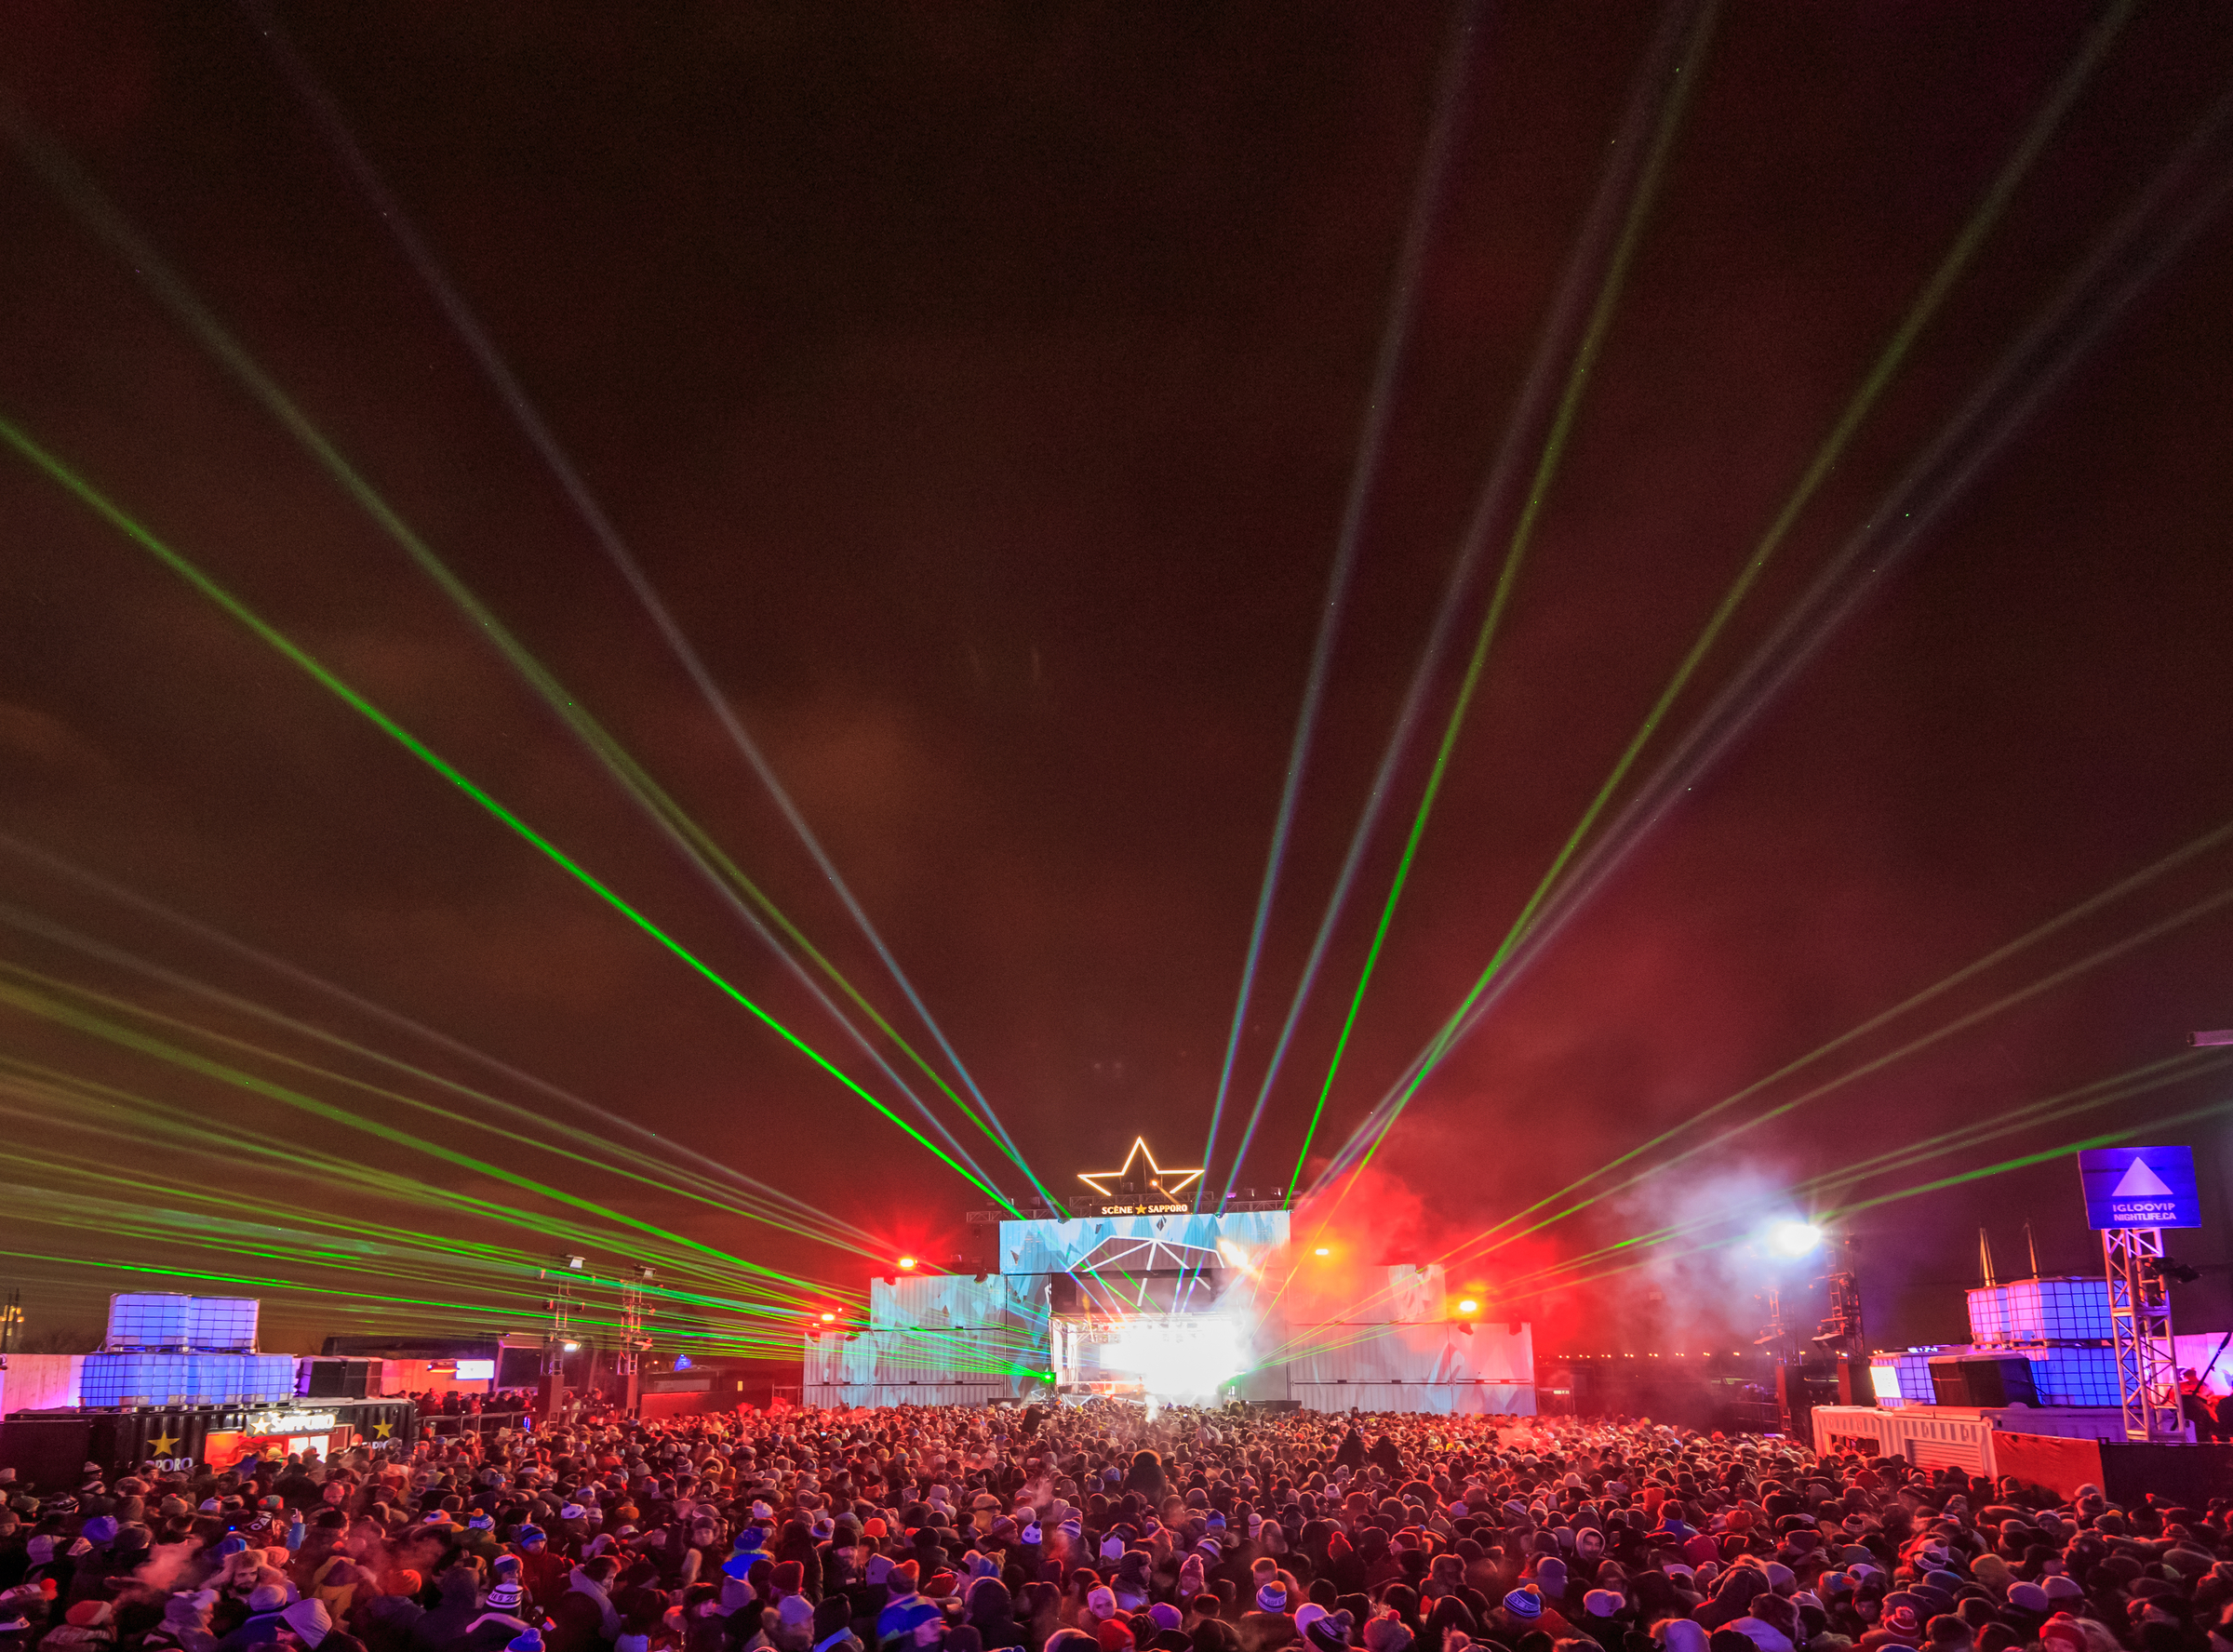 Here's why Igloofest is the only music festival we want to attend this season [GALLERY]